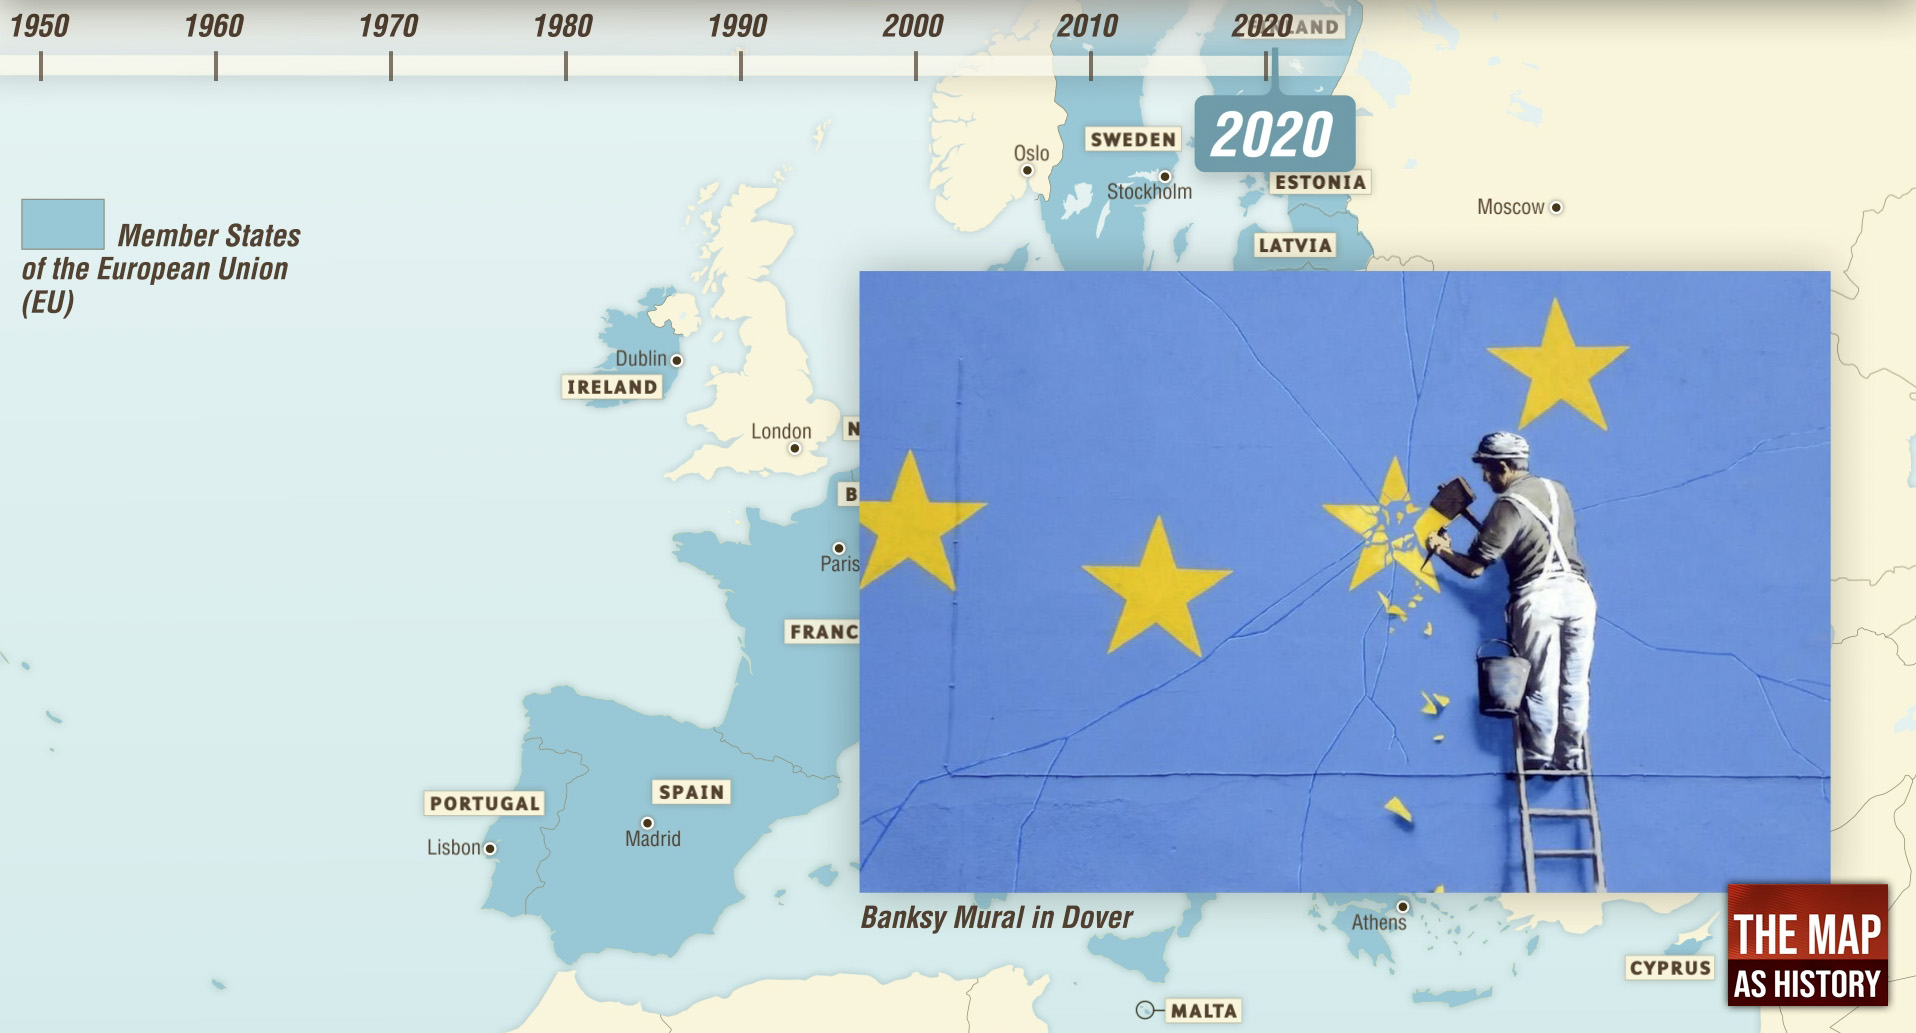 Milestones in European Construction